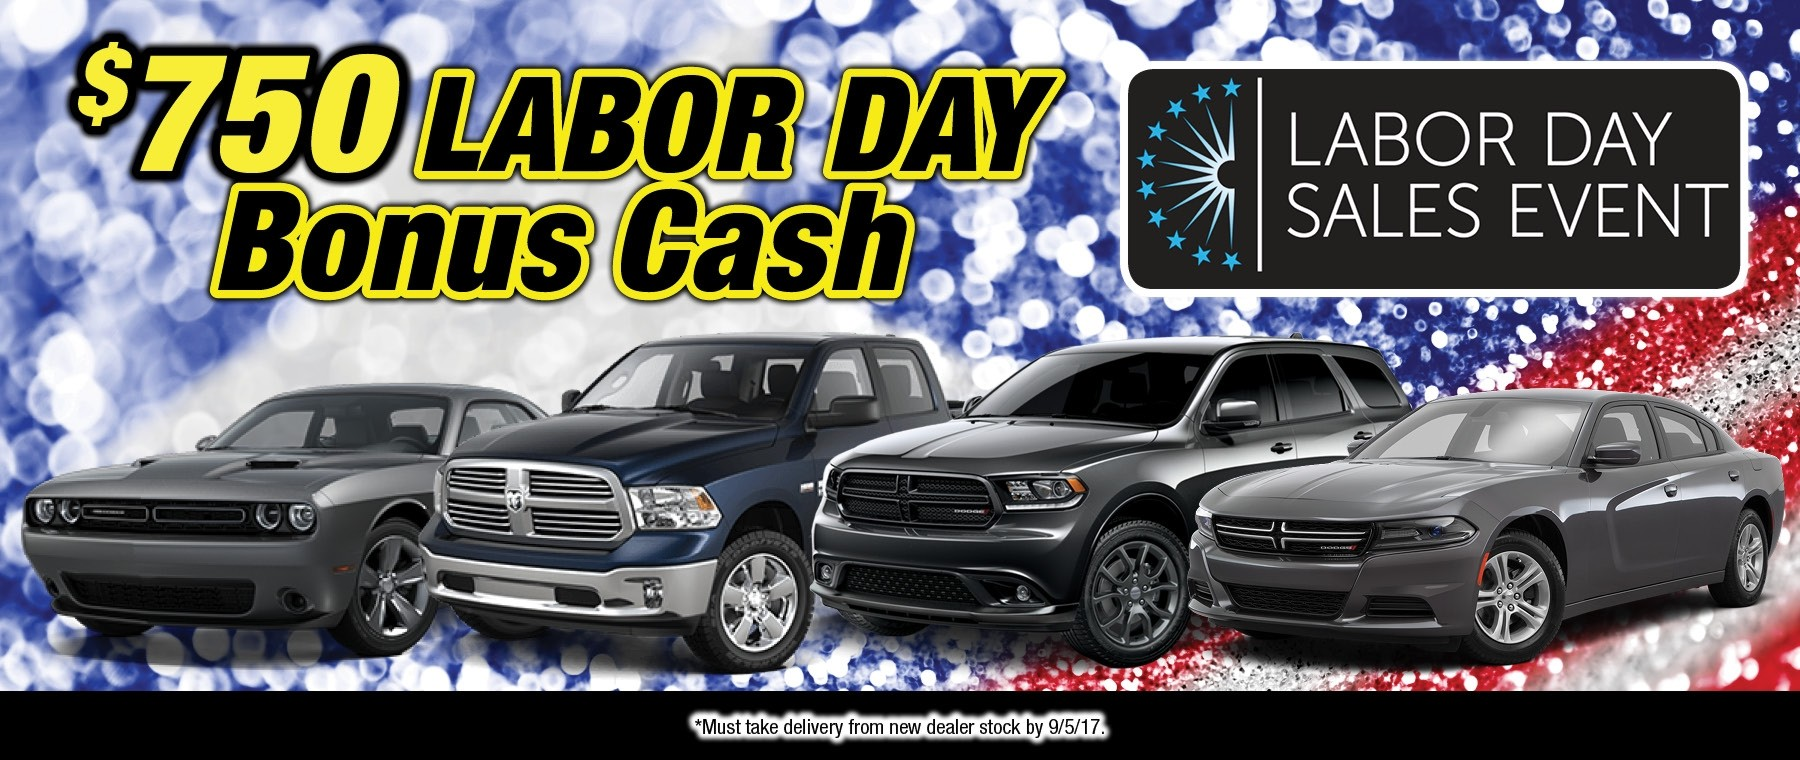 $750 Labor Day Bonus Cash available at Thomson Chrysler Dodge Jeep RAM in Thomson, GA